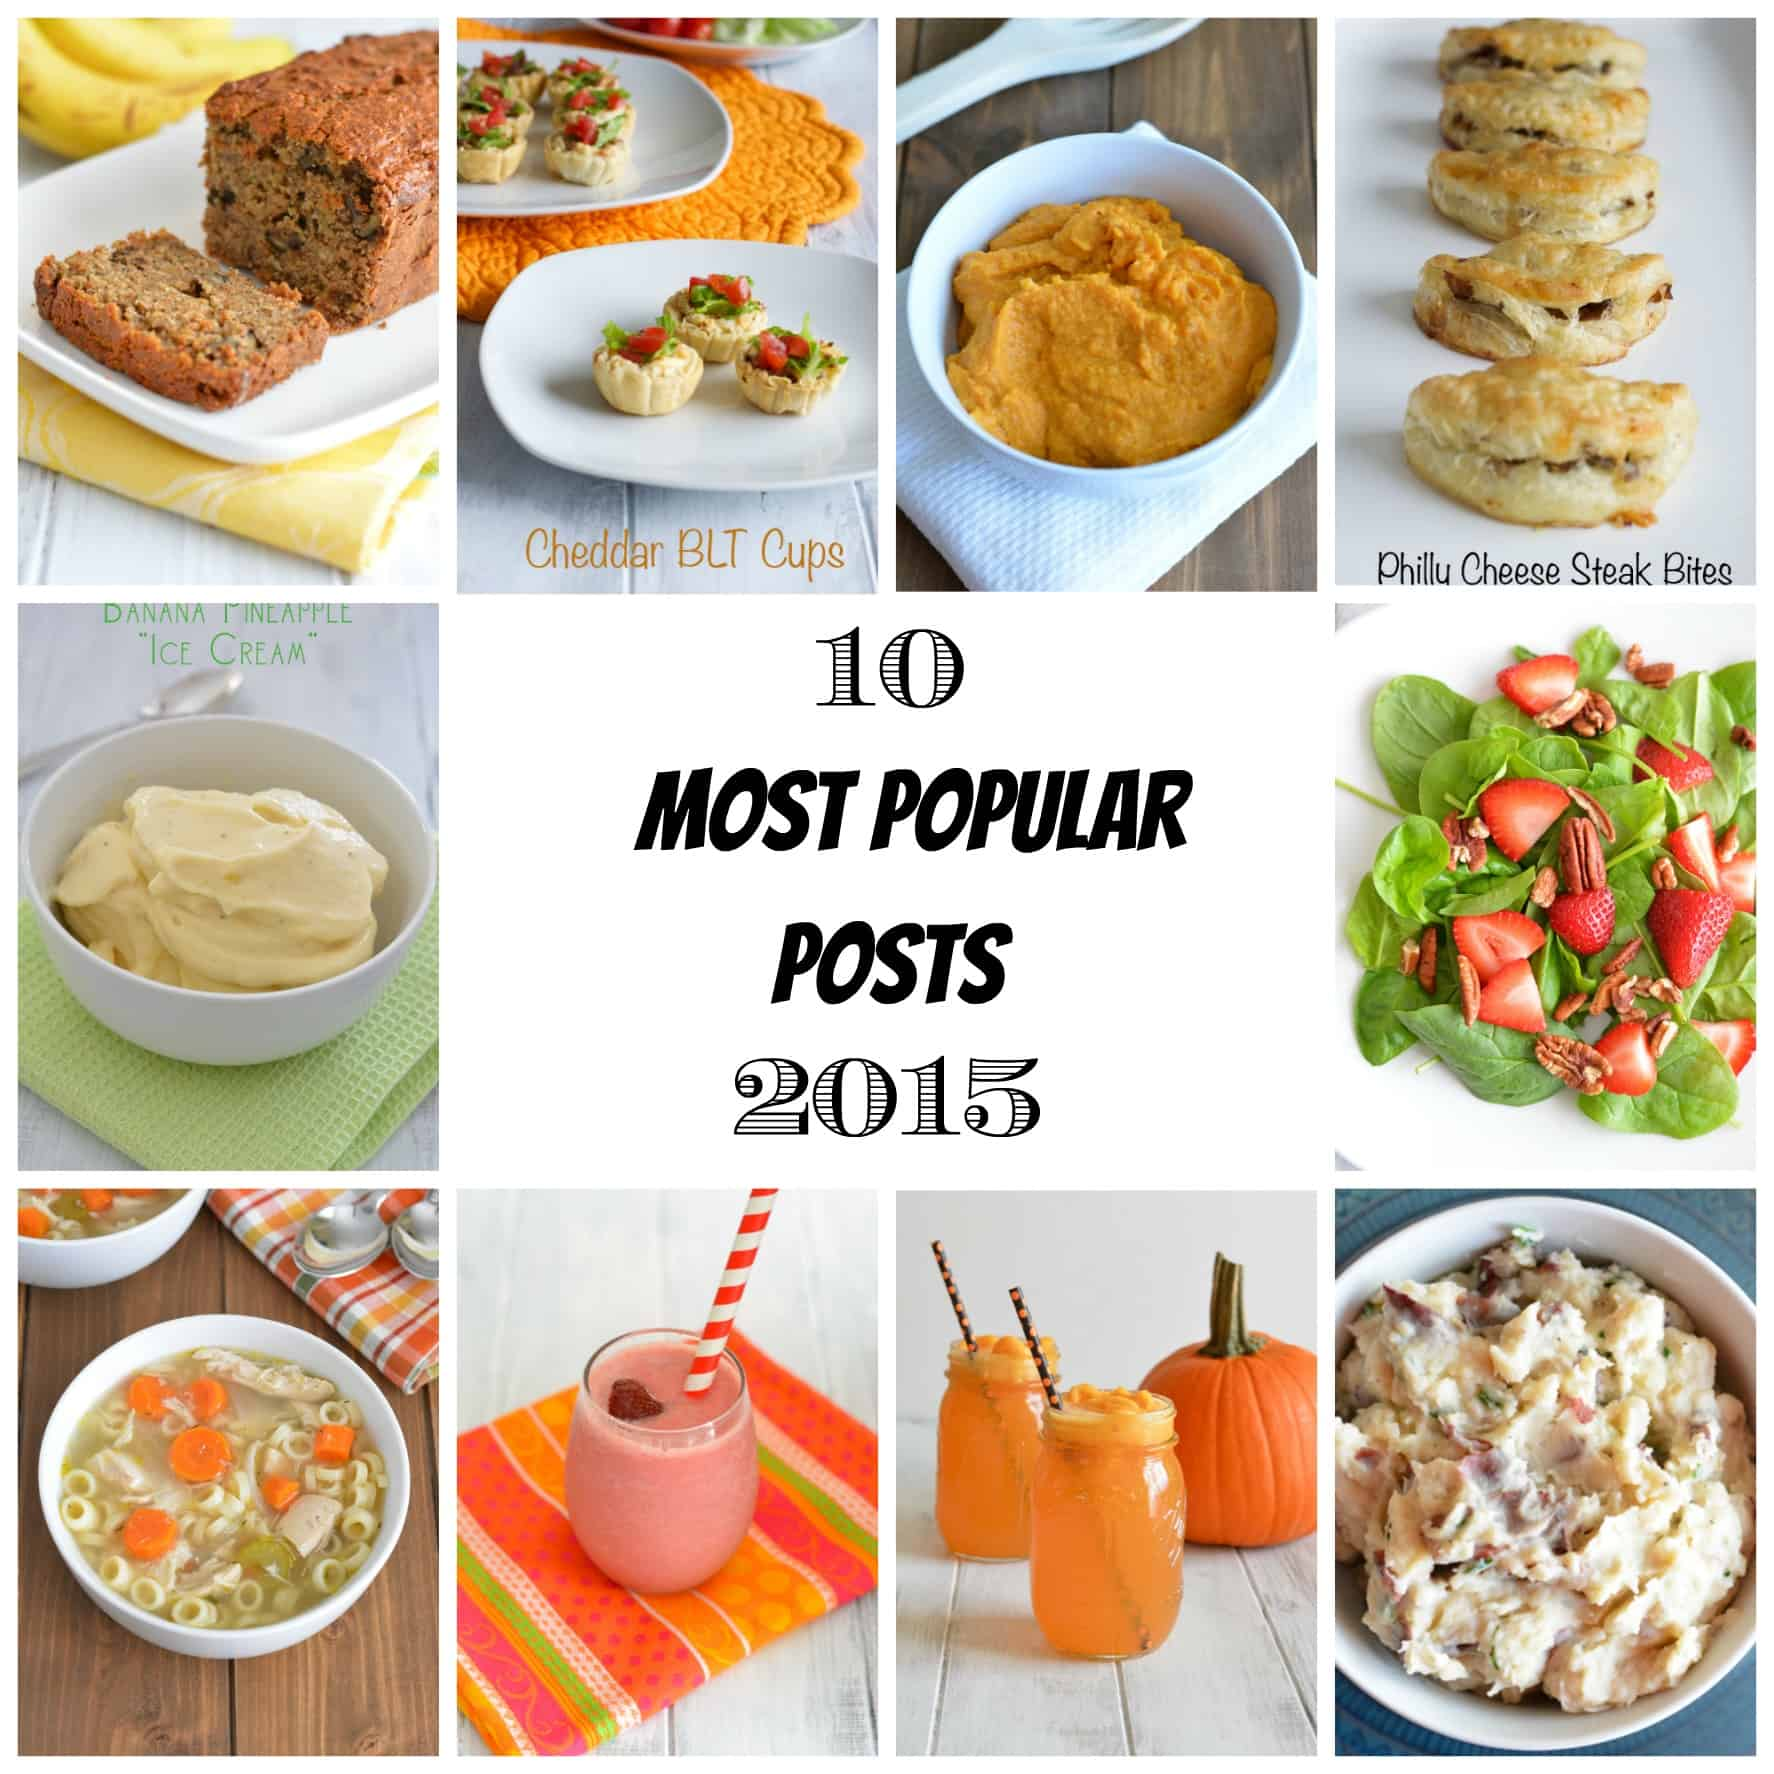 10 Most Popular Recipe Posts of 2015